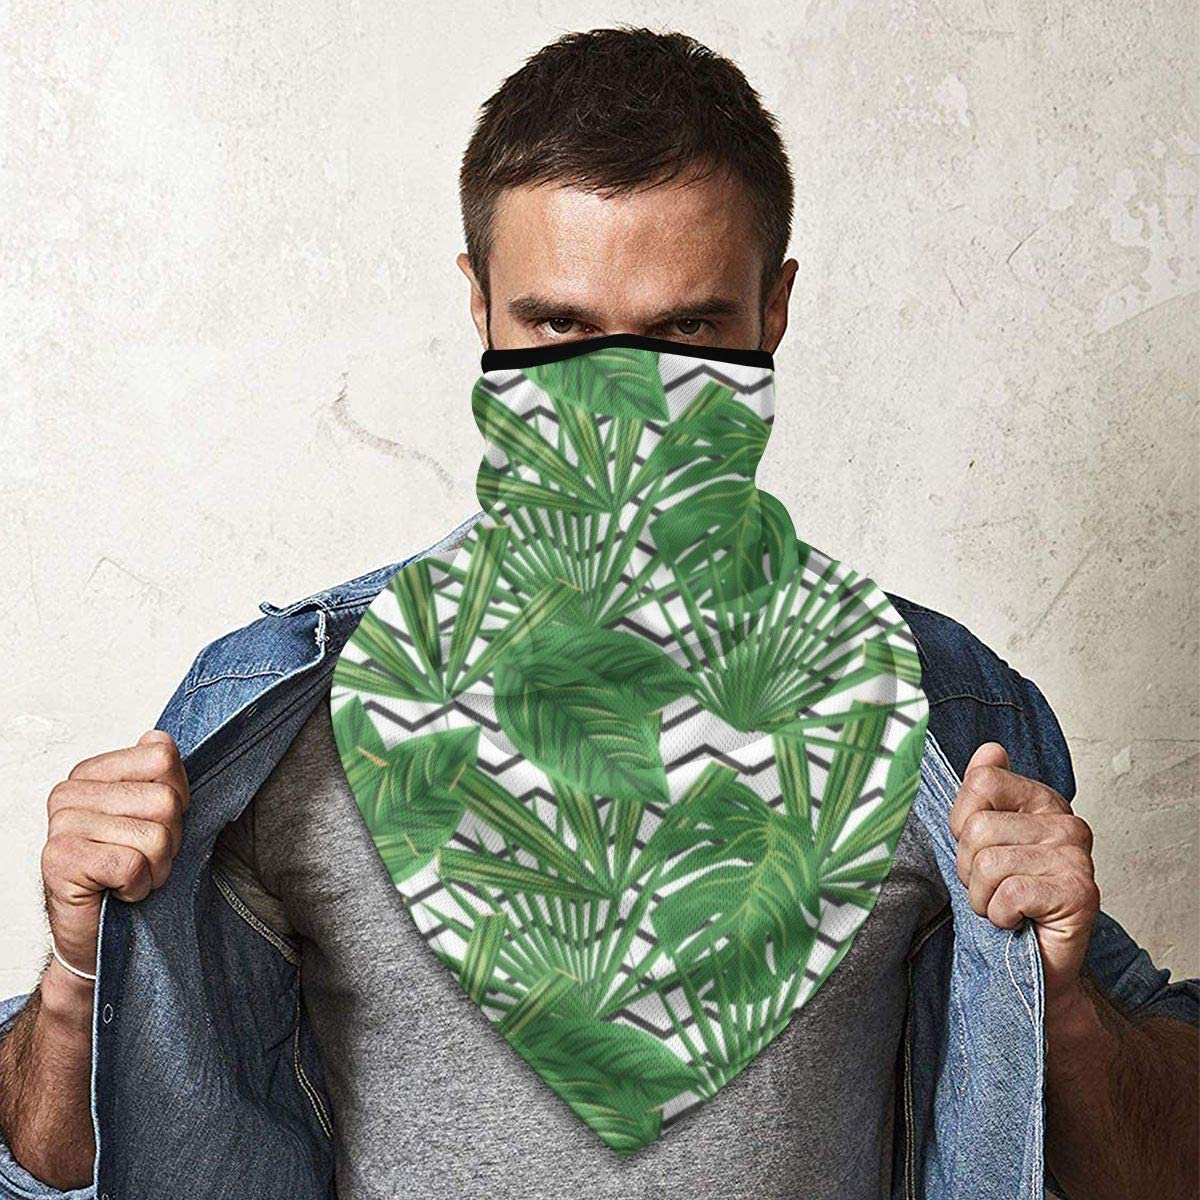 Wind-Resistant Face Mask/& Neck Gaiter,Balaclava Ski Masks,Breathable Tactical Hood,Windproof Face Warmer for Running,Motorcycling,Hiking-Tropical Leaf Zig Zag